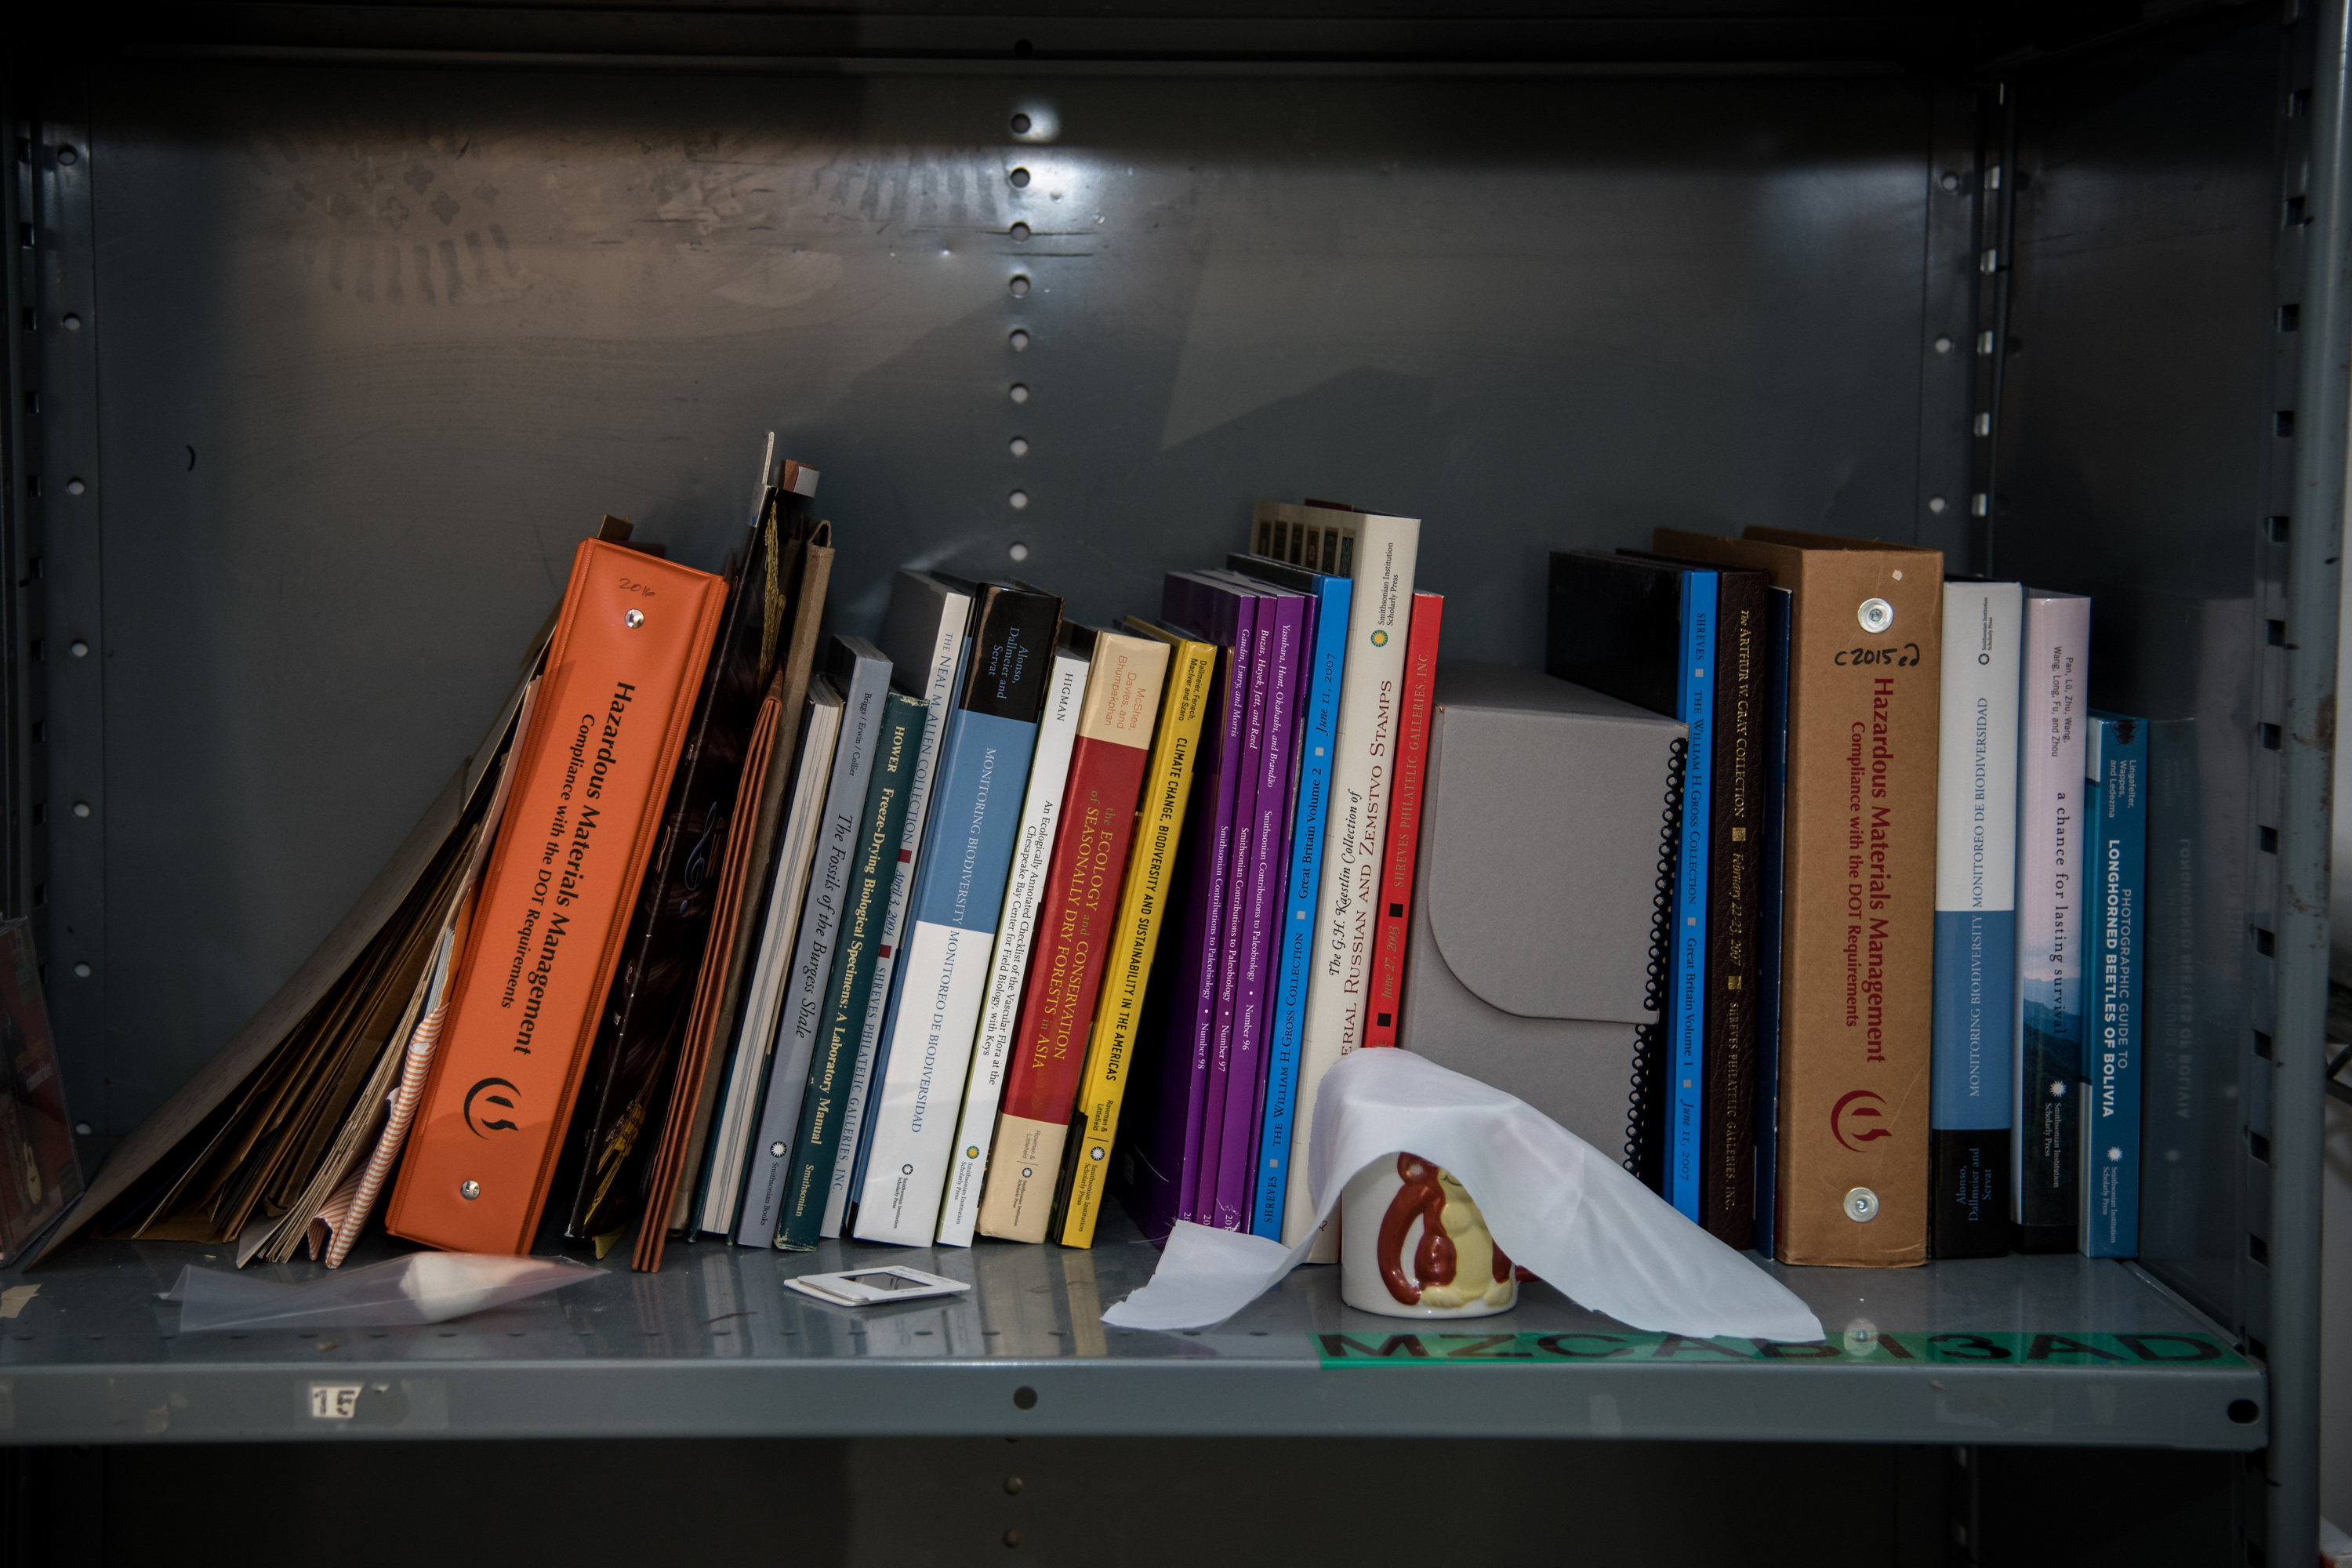 a shelf with books, folders and a small white ceramic mug with a monkey on it